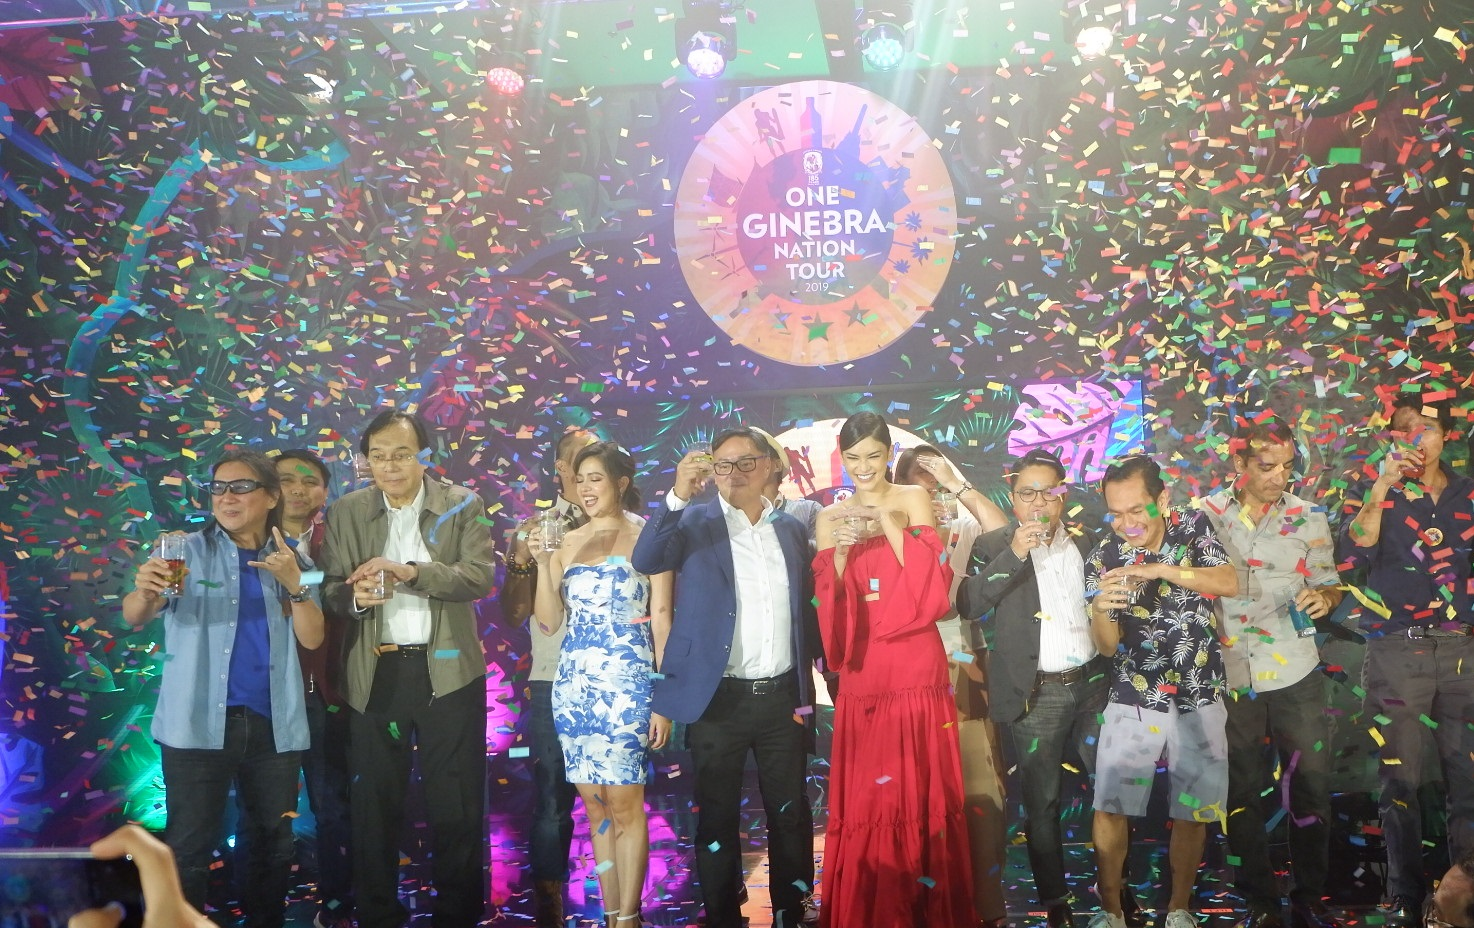 One Ginebra: 185th Anniversary